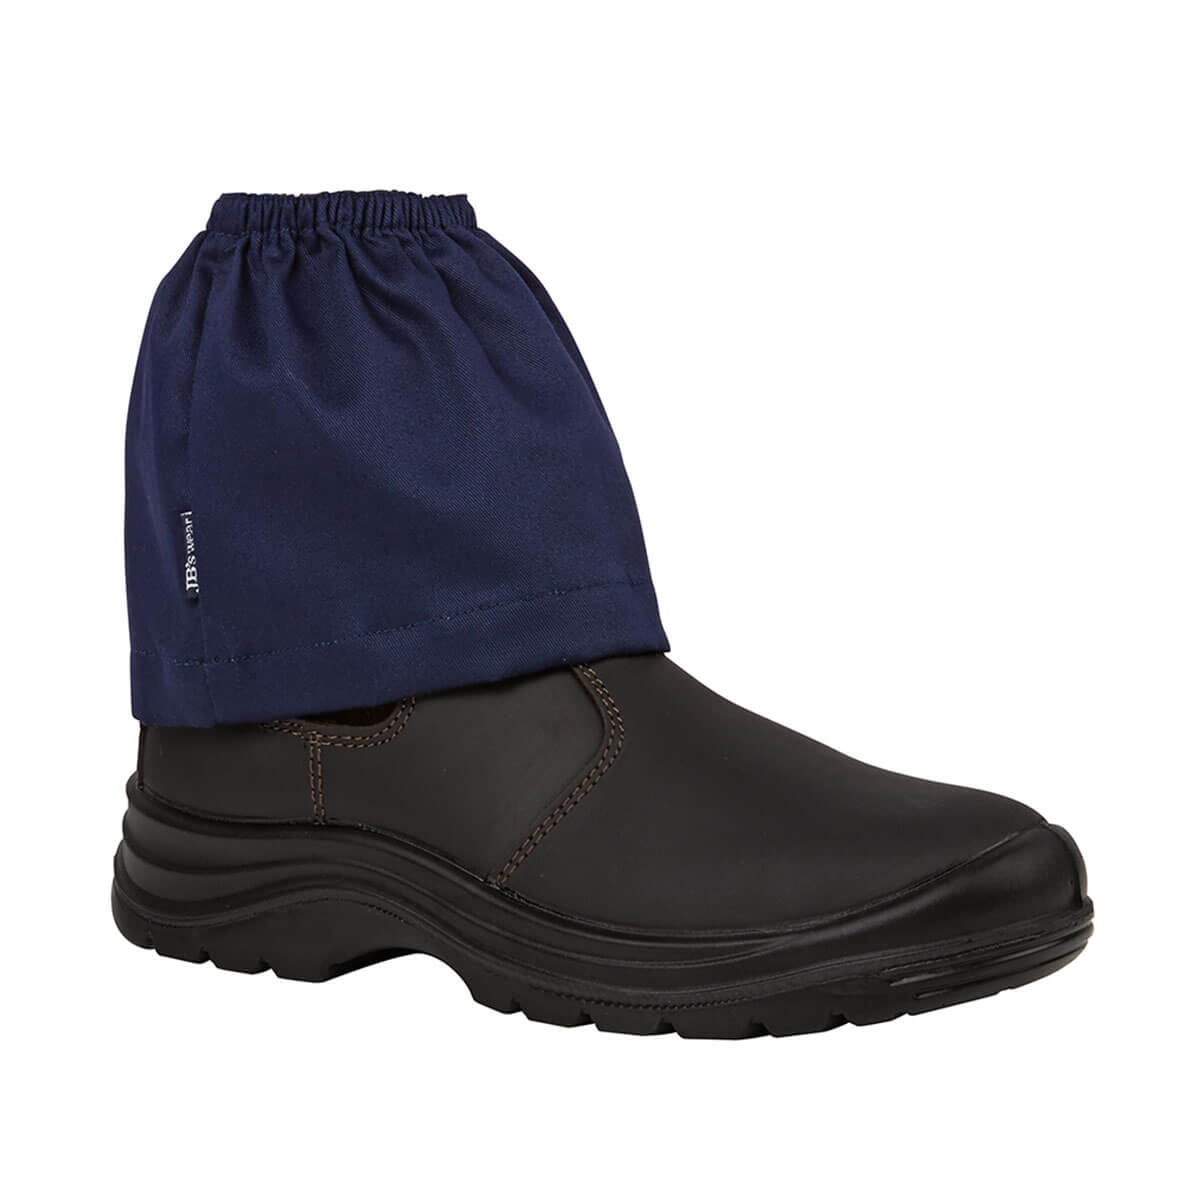 Boot Cover-Navy